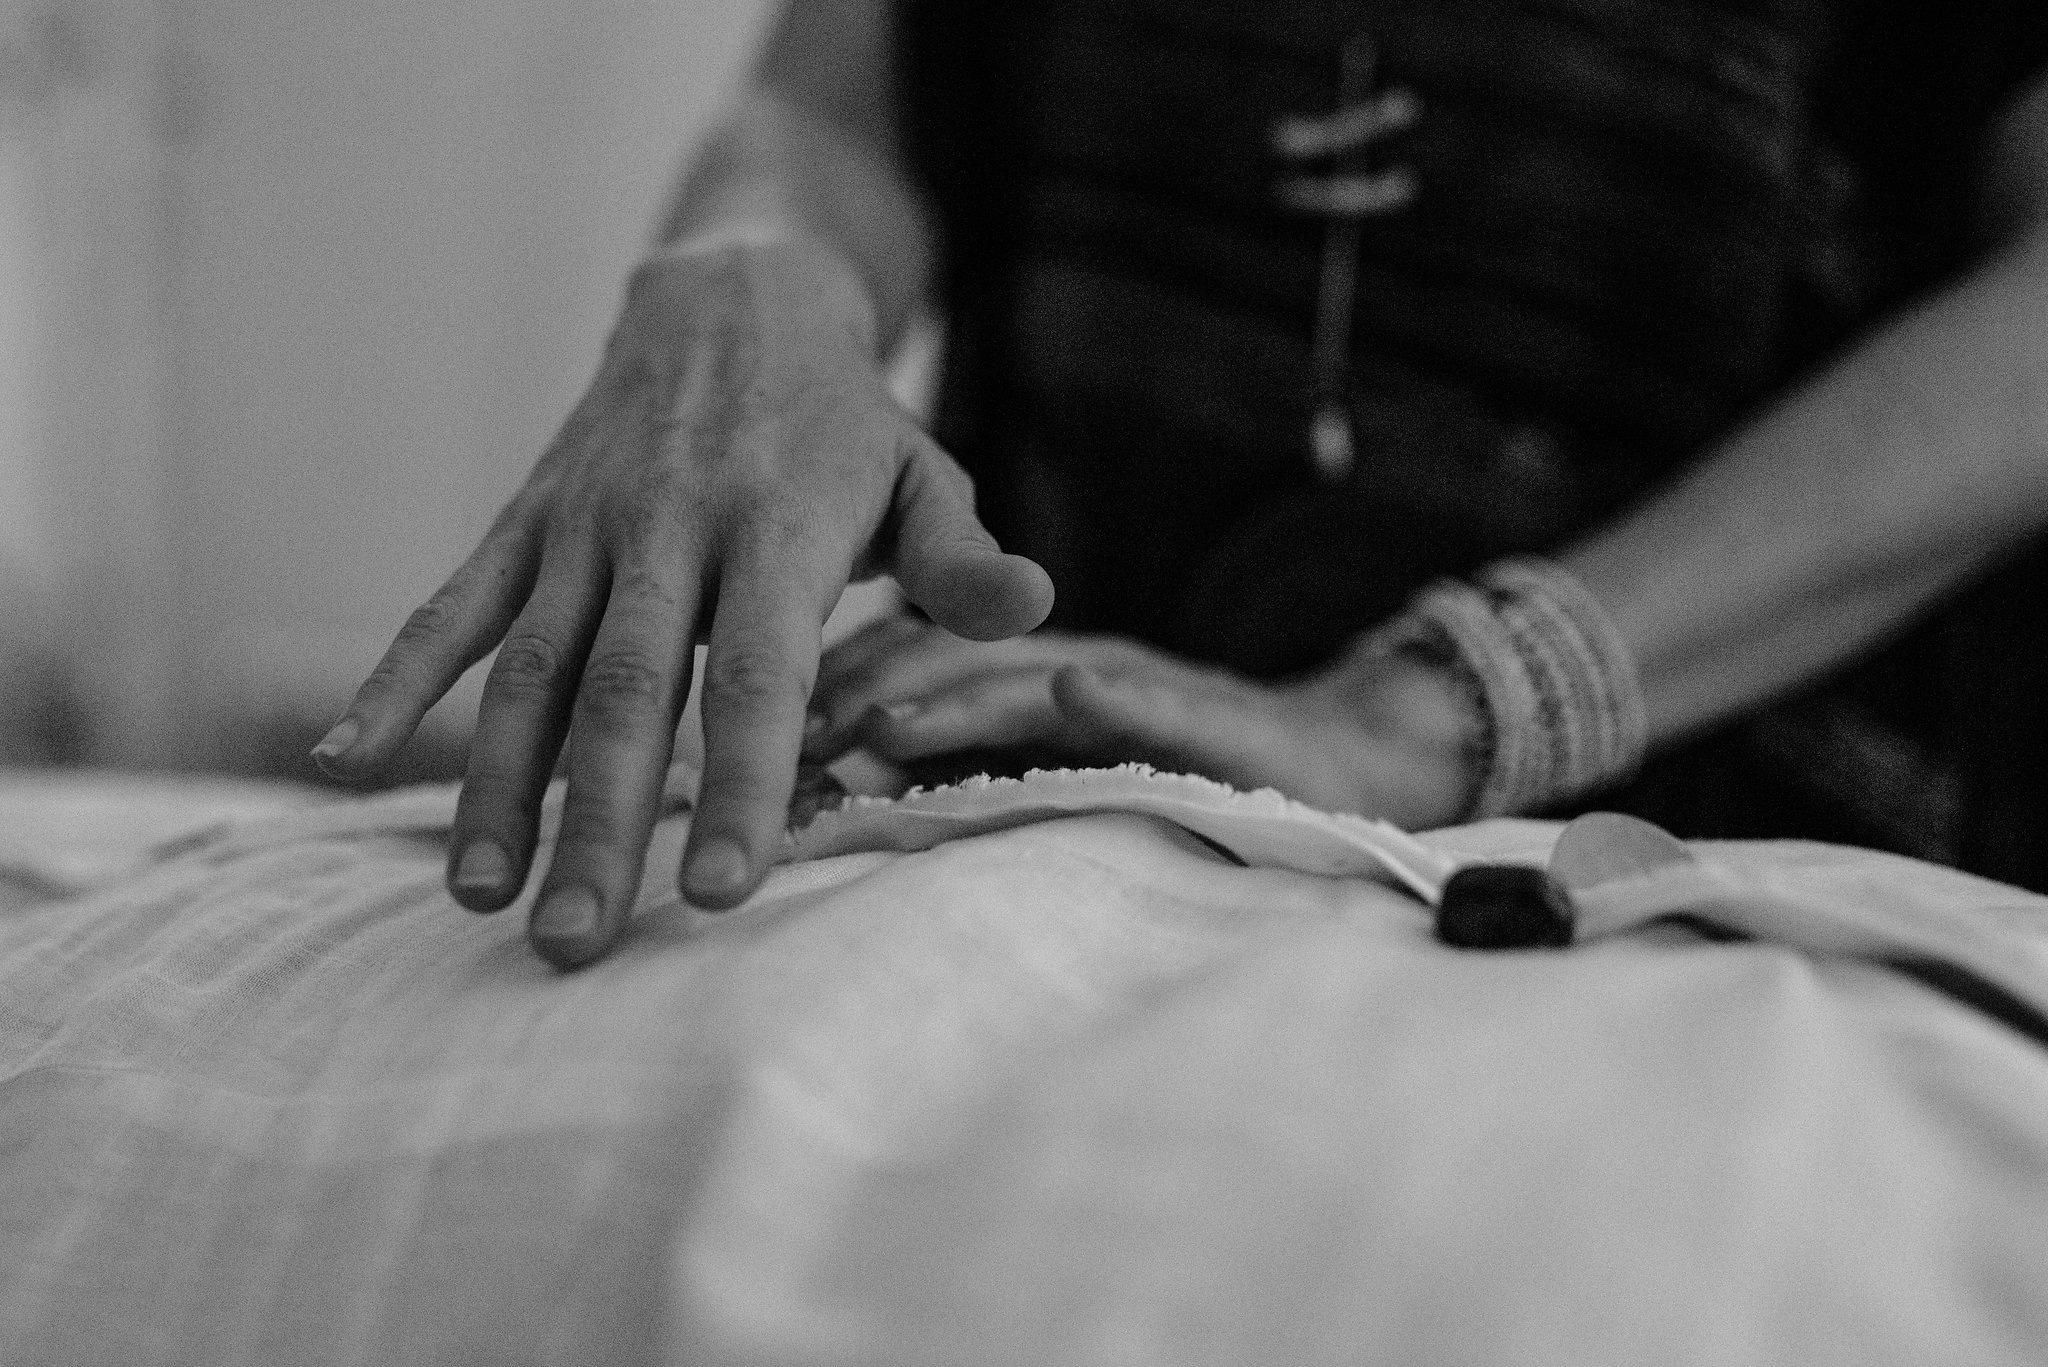 WHAT Is REIKI? - Reiki is an ancient Japanese technique for physical, mental, emotional and spiritual healing and balancing while enhancing personal growth.The practitioner serves as a channel, a vessel for energy to flow through to the recipient without or with little physical touch.The flow of life force energy through the hands balances the subtle energies in the body, addressing physical, emotional, mental, and spiritual conditions while removing blocks affecting a person in their daily life.